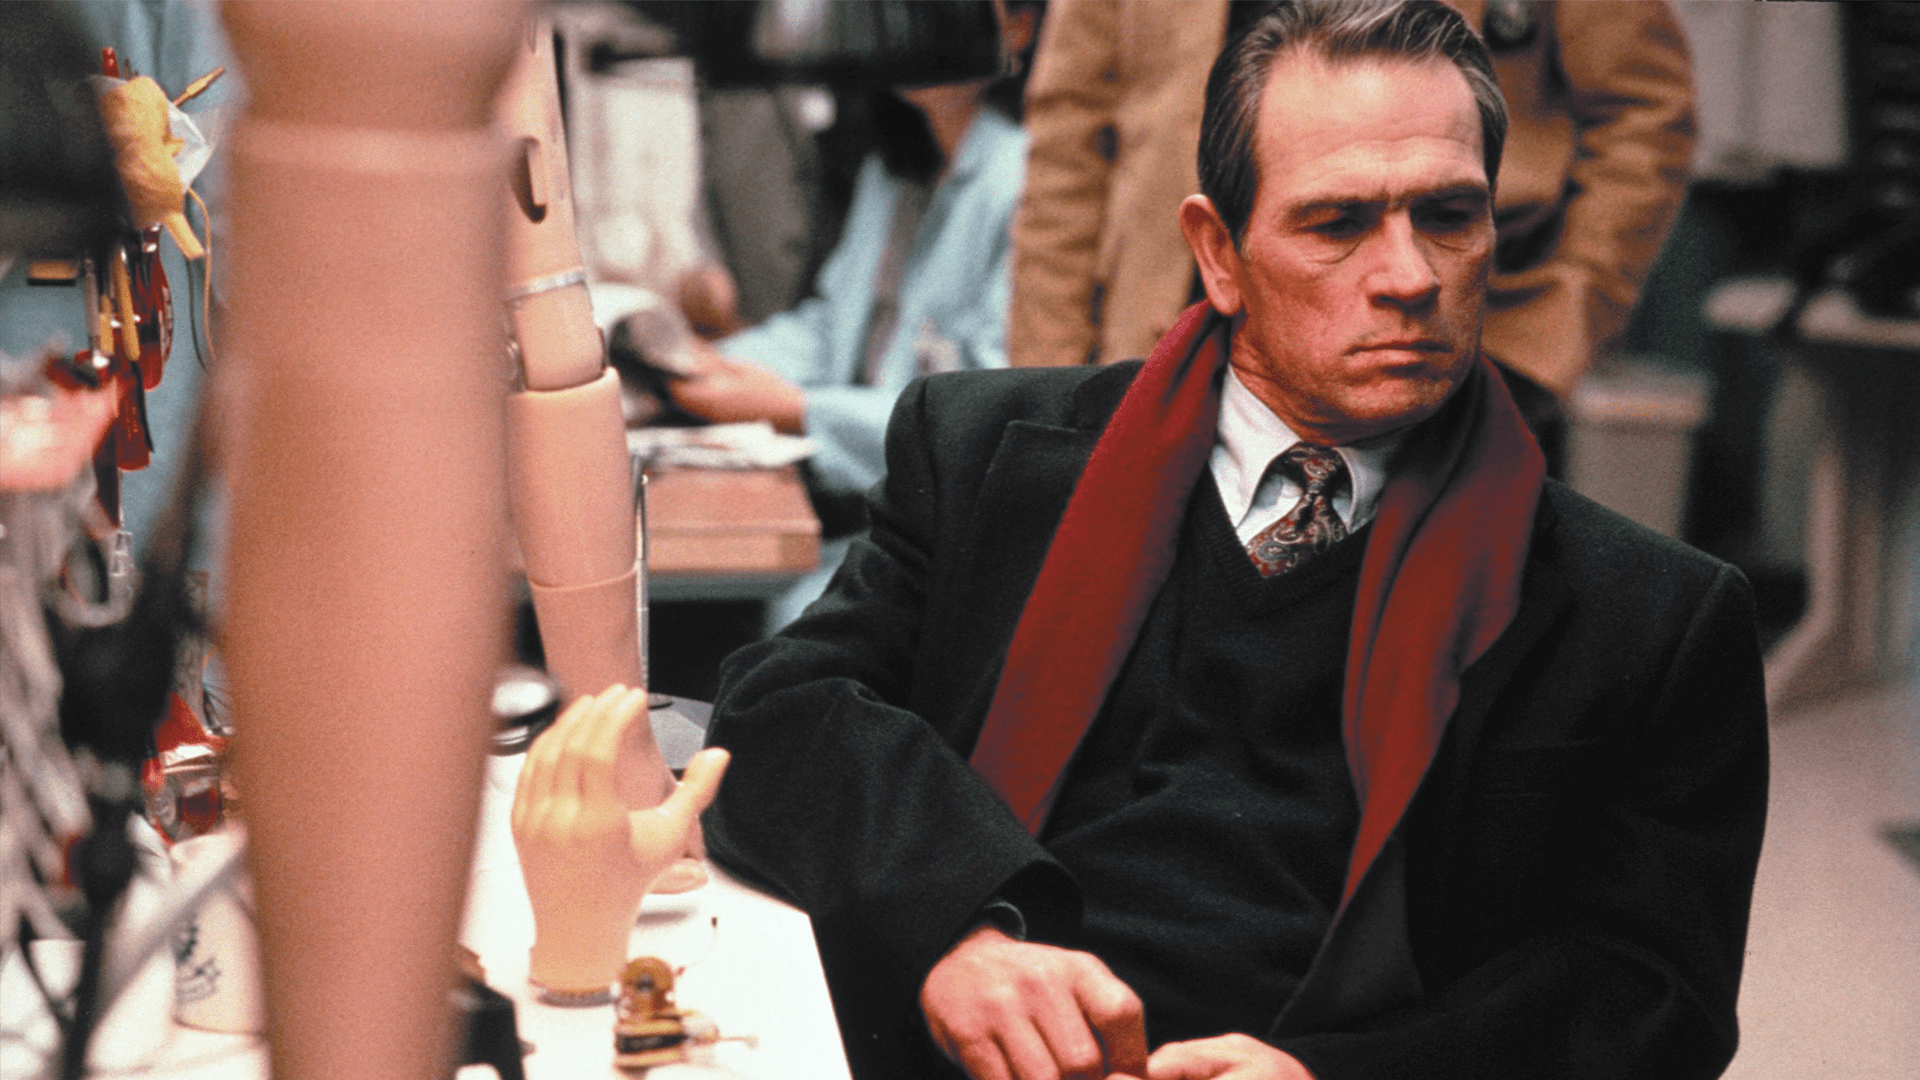 Tommy Lee Jones, fugitif, mais pas que